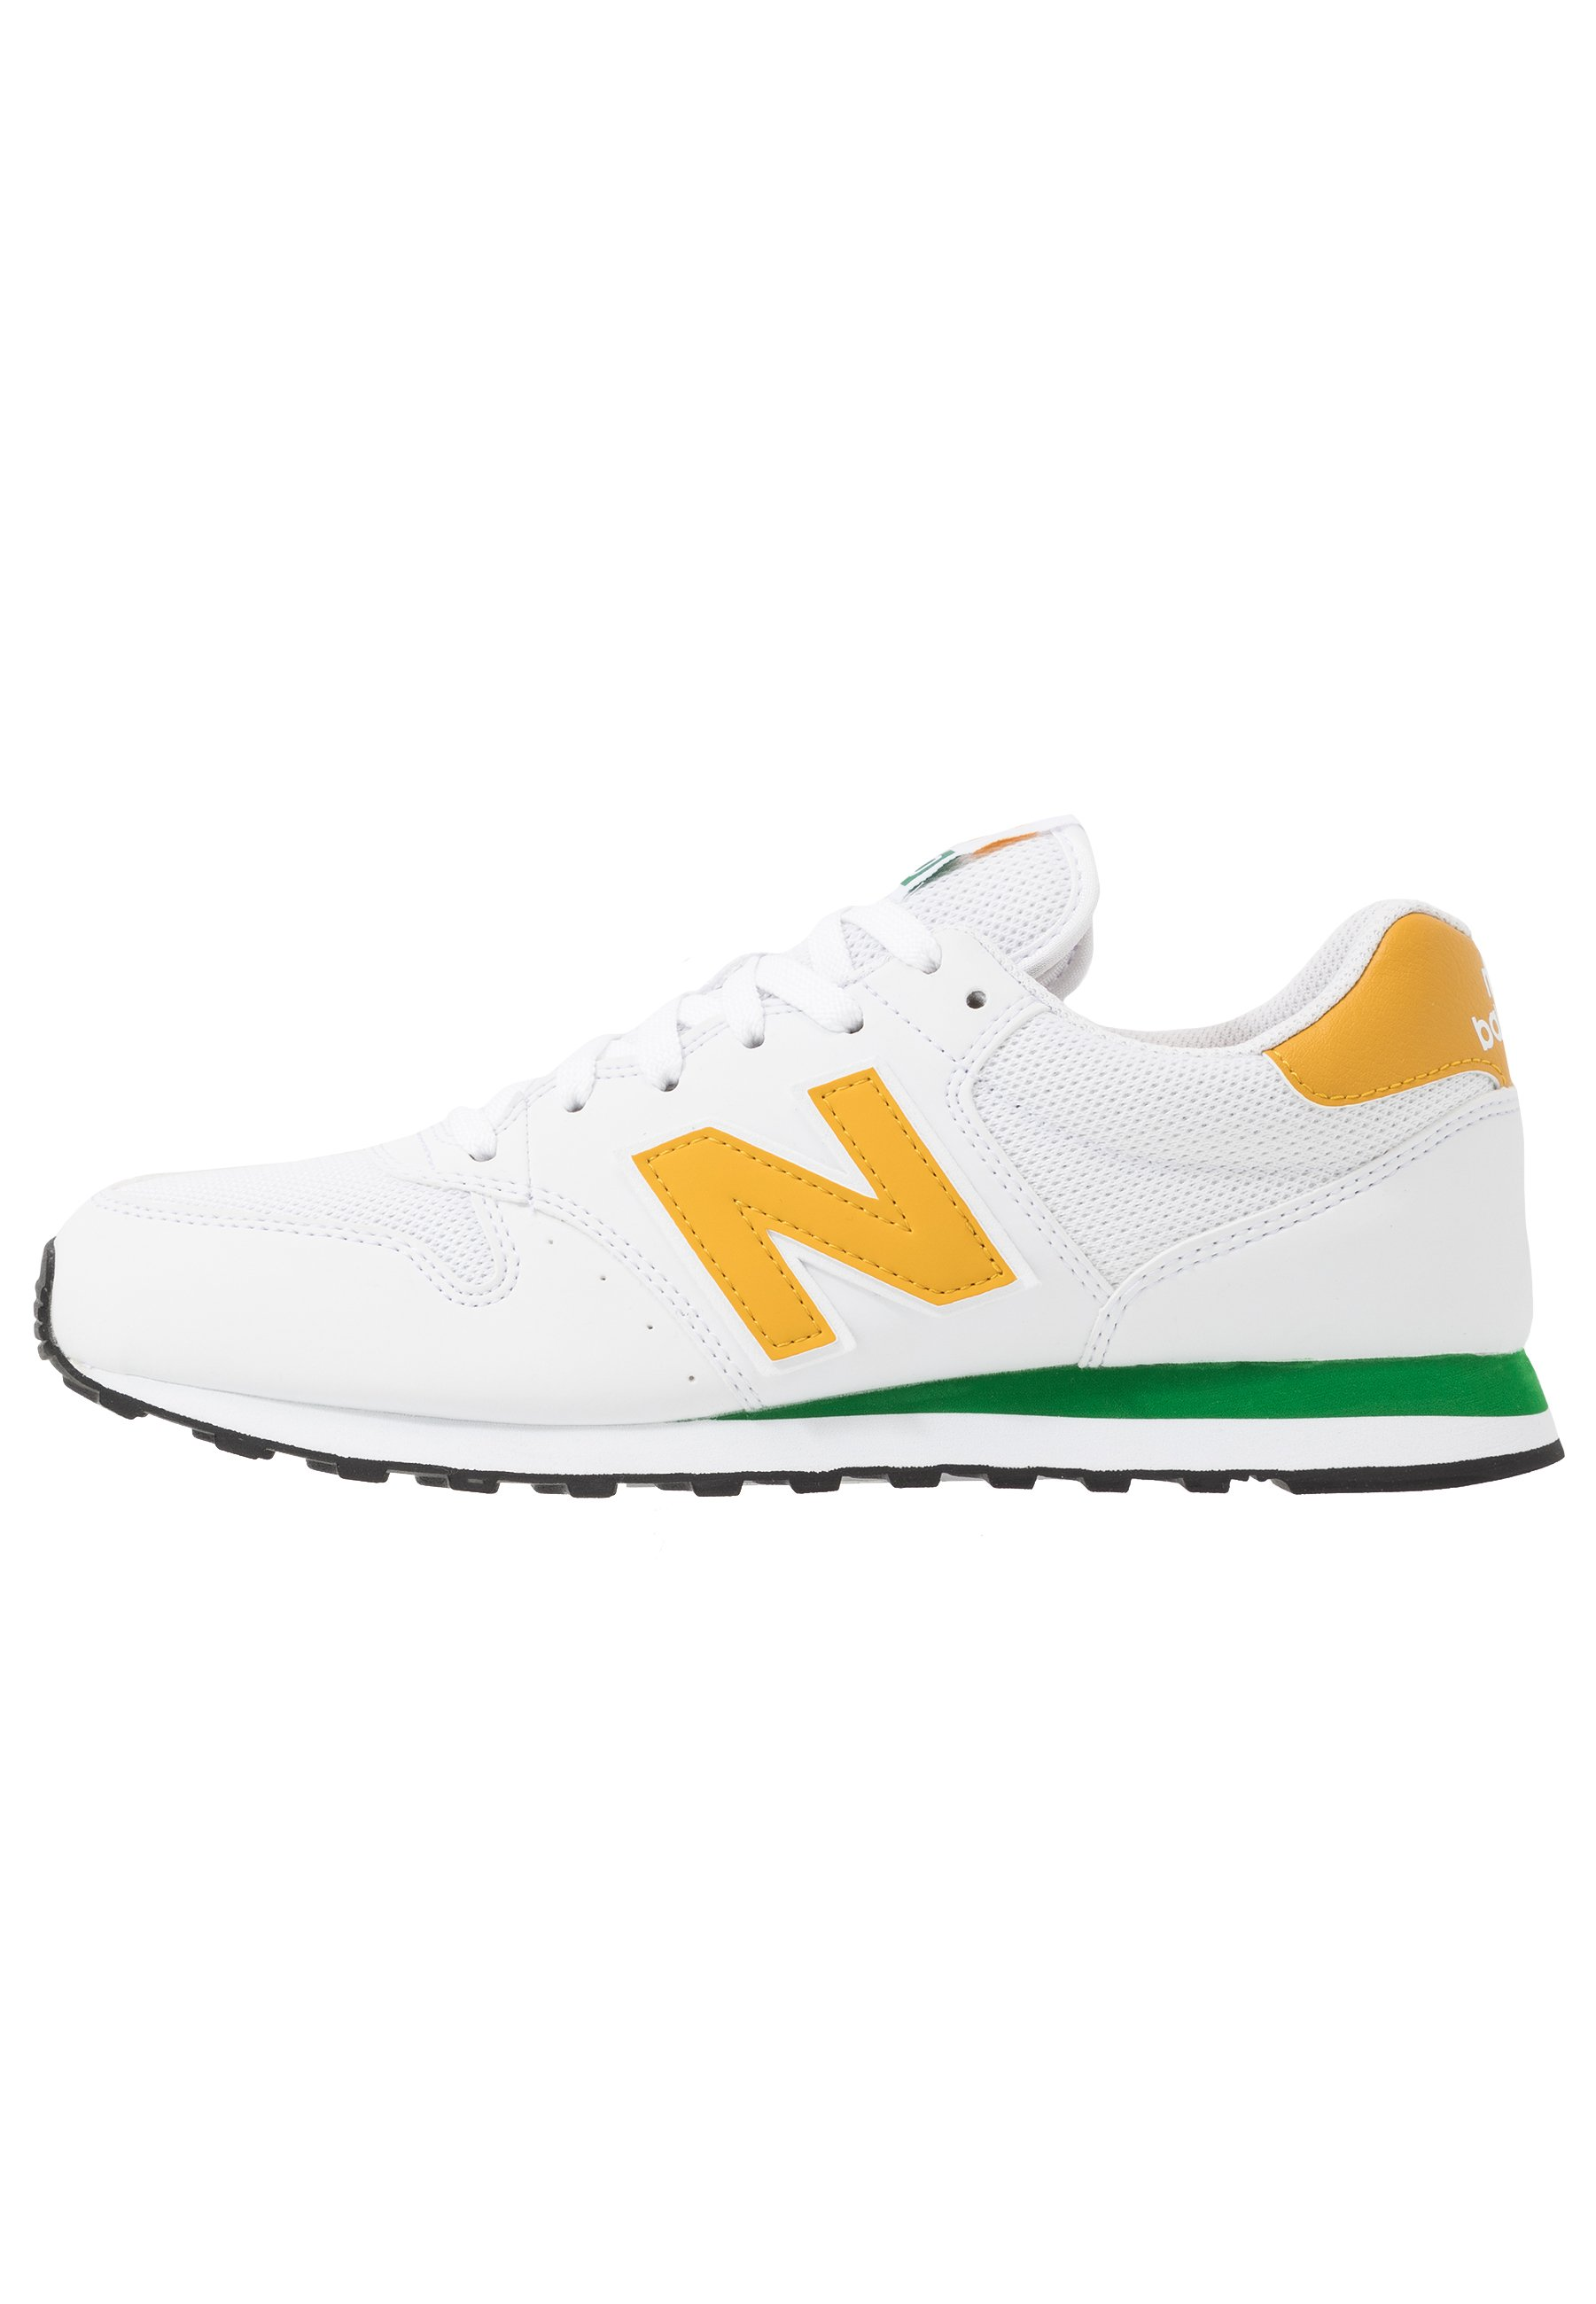 500 - Sneaker low - white/green/sunflower